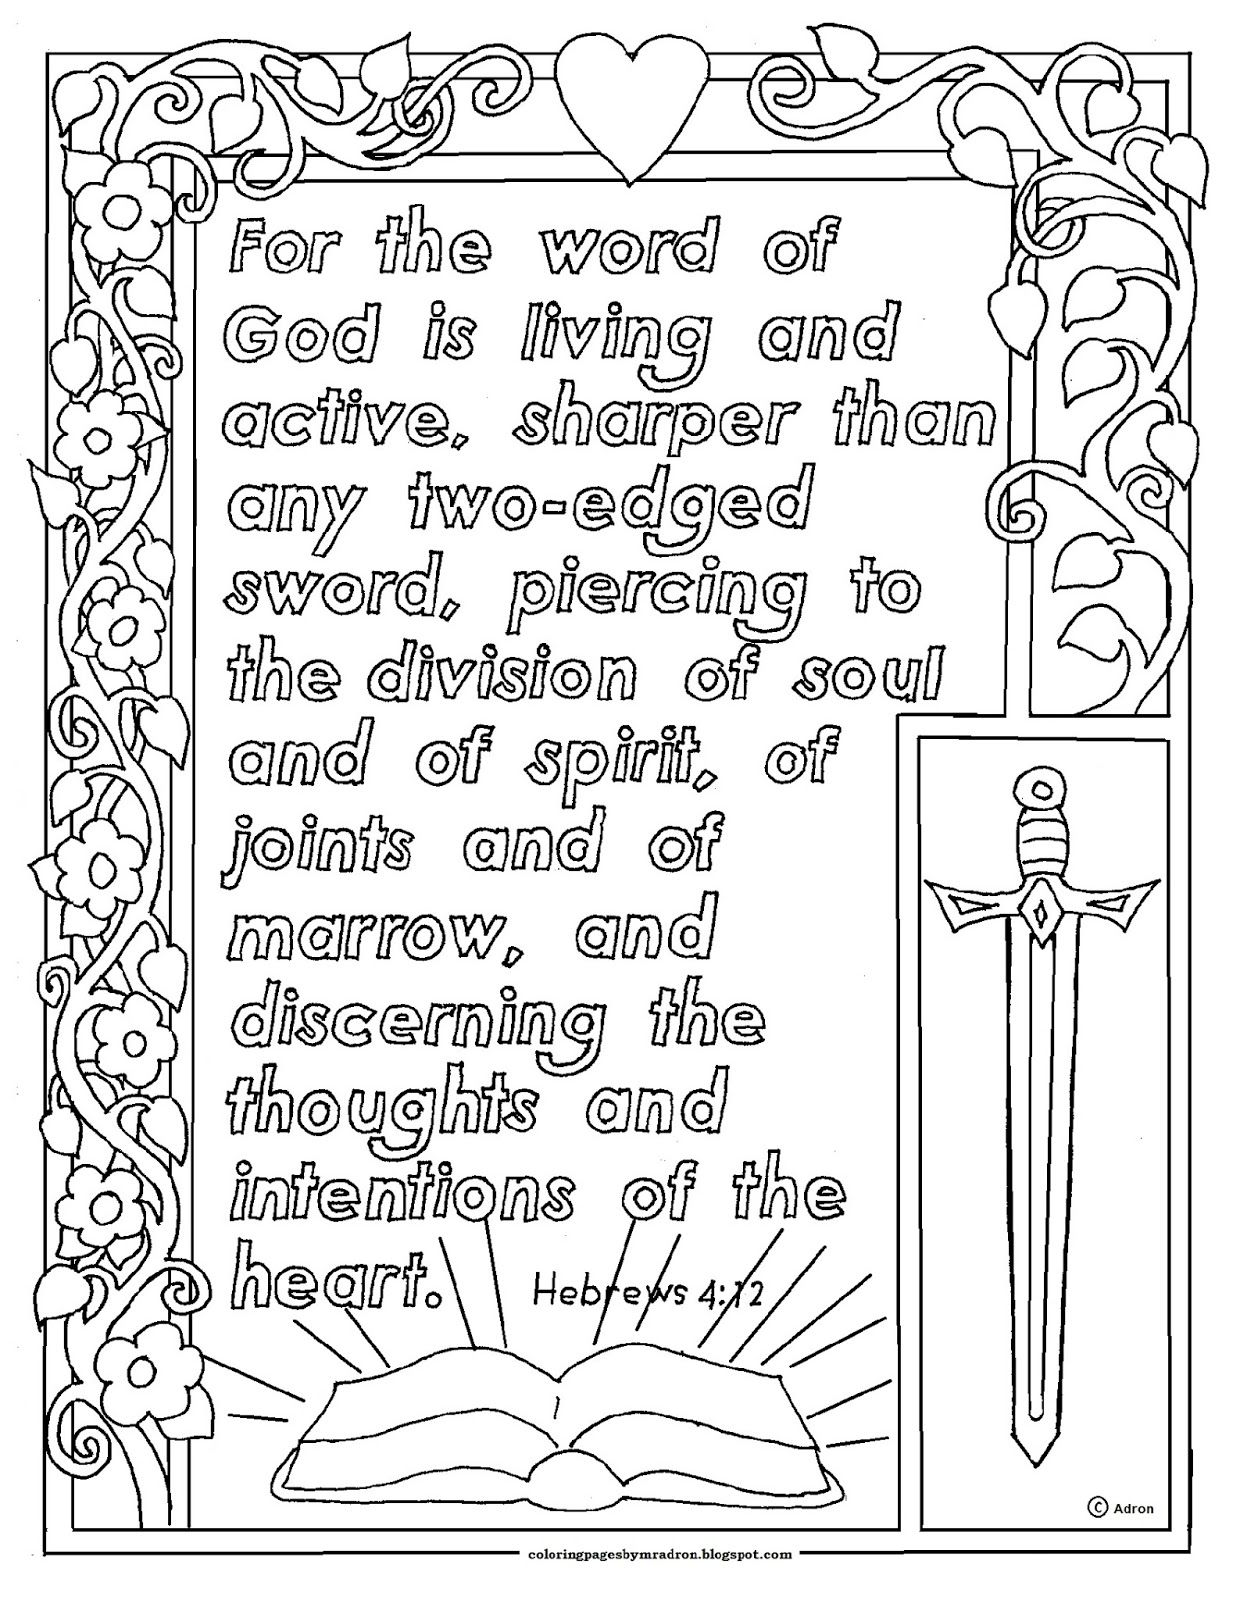 Hebrews 4 12 Jpg 1240 1600 Bible Coloring Pages